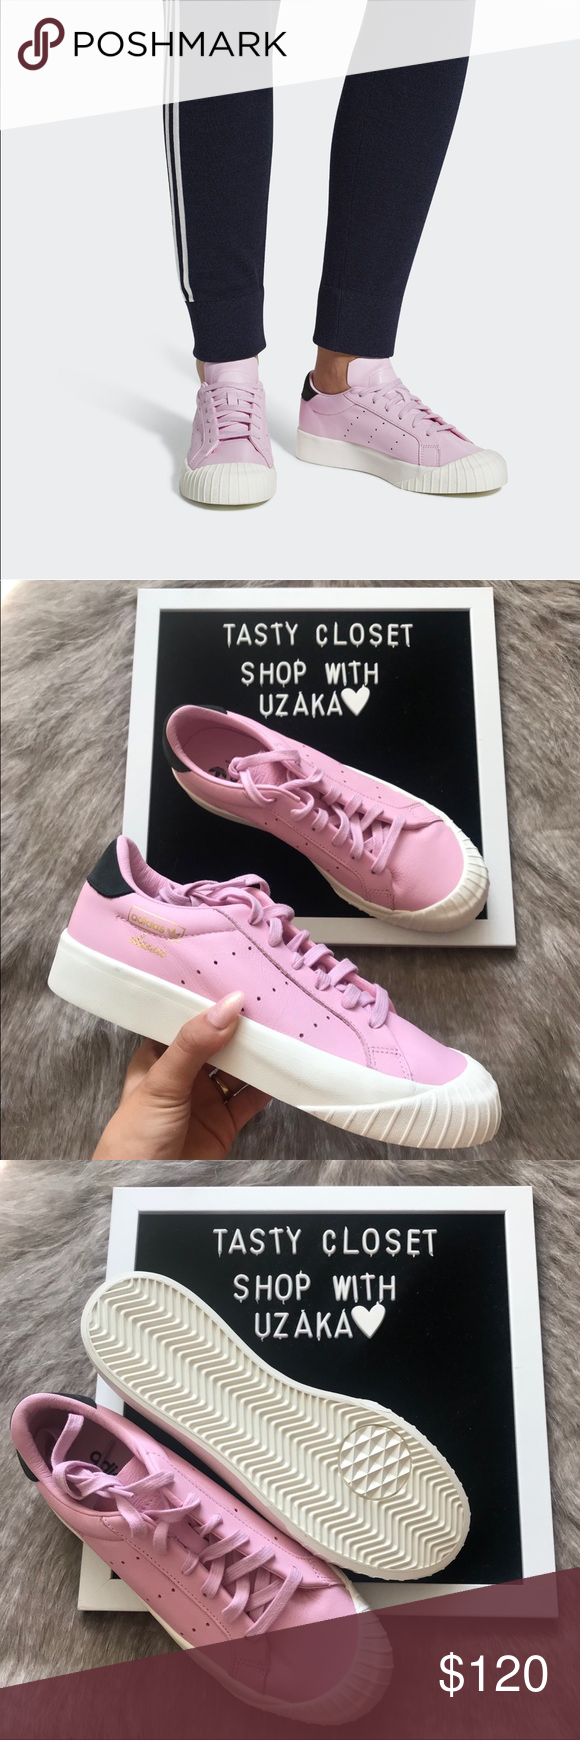 promo code 8bd41 7e459 Adidas everyn sneakers Adidas everyn sneakers New with box, without lid Wonder  pink adidas Shoes Sneakers